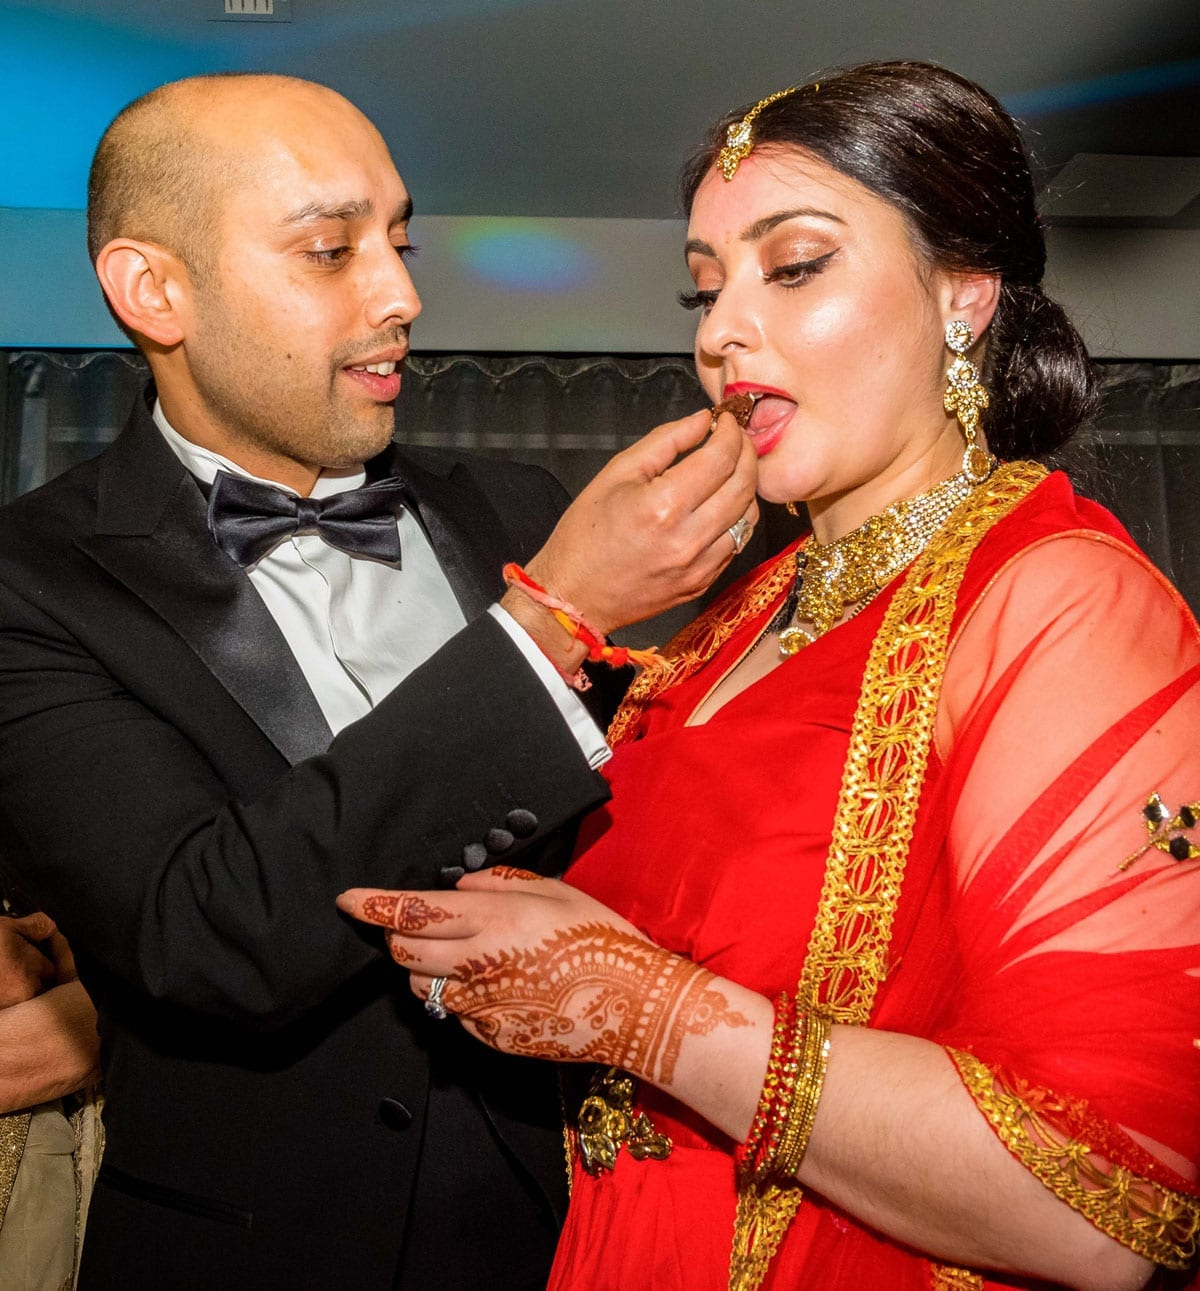 Asian Wedidng - Bride and Groom eating wedding cake